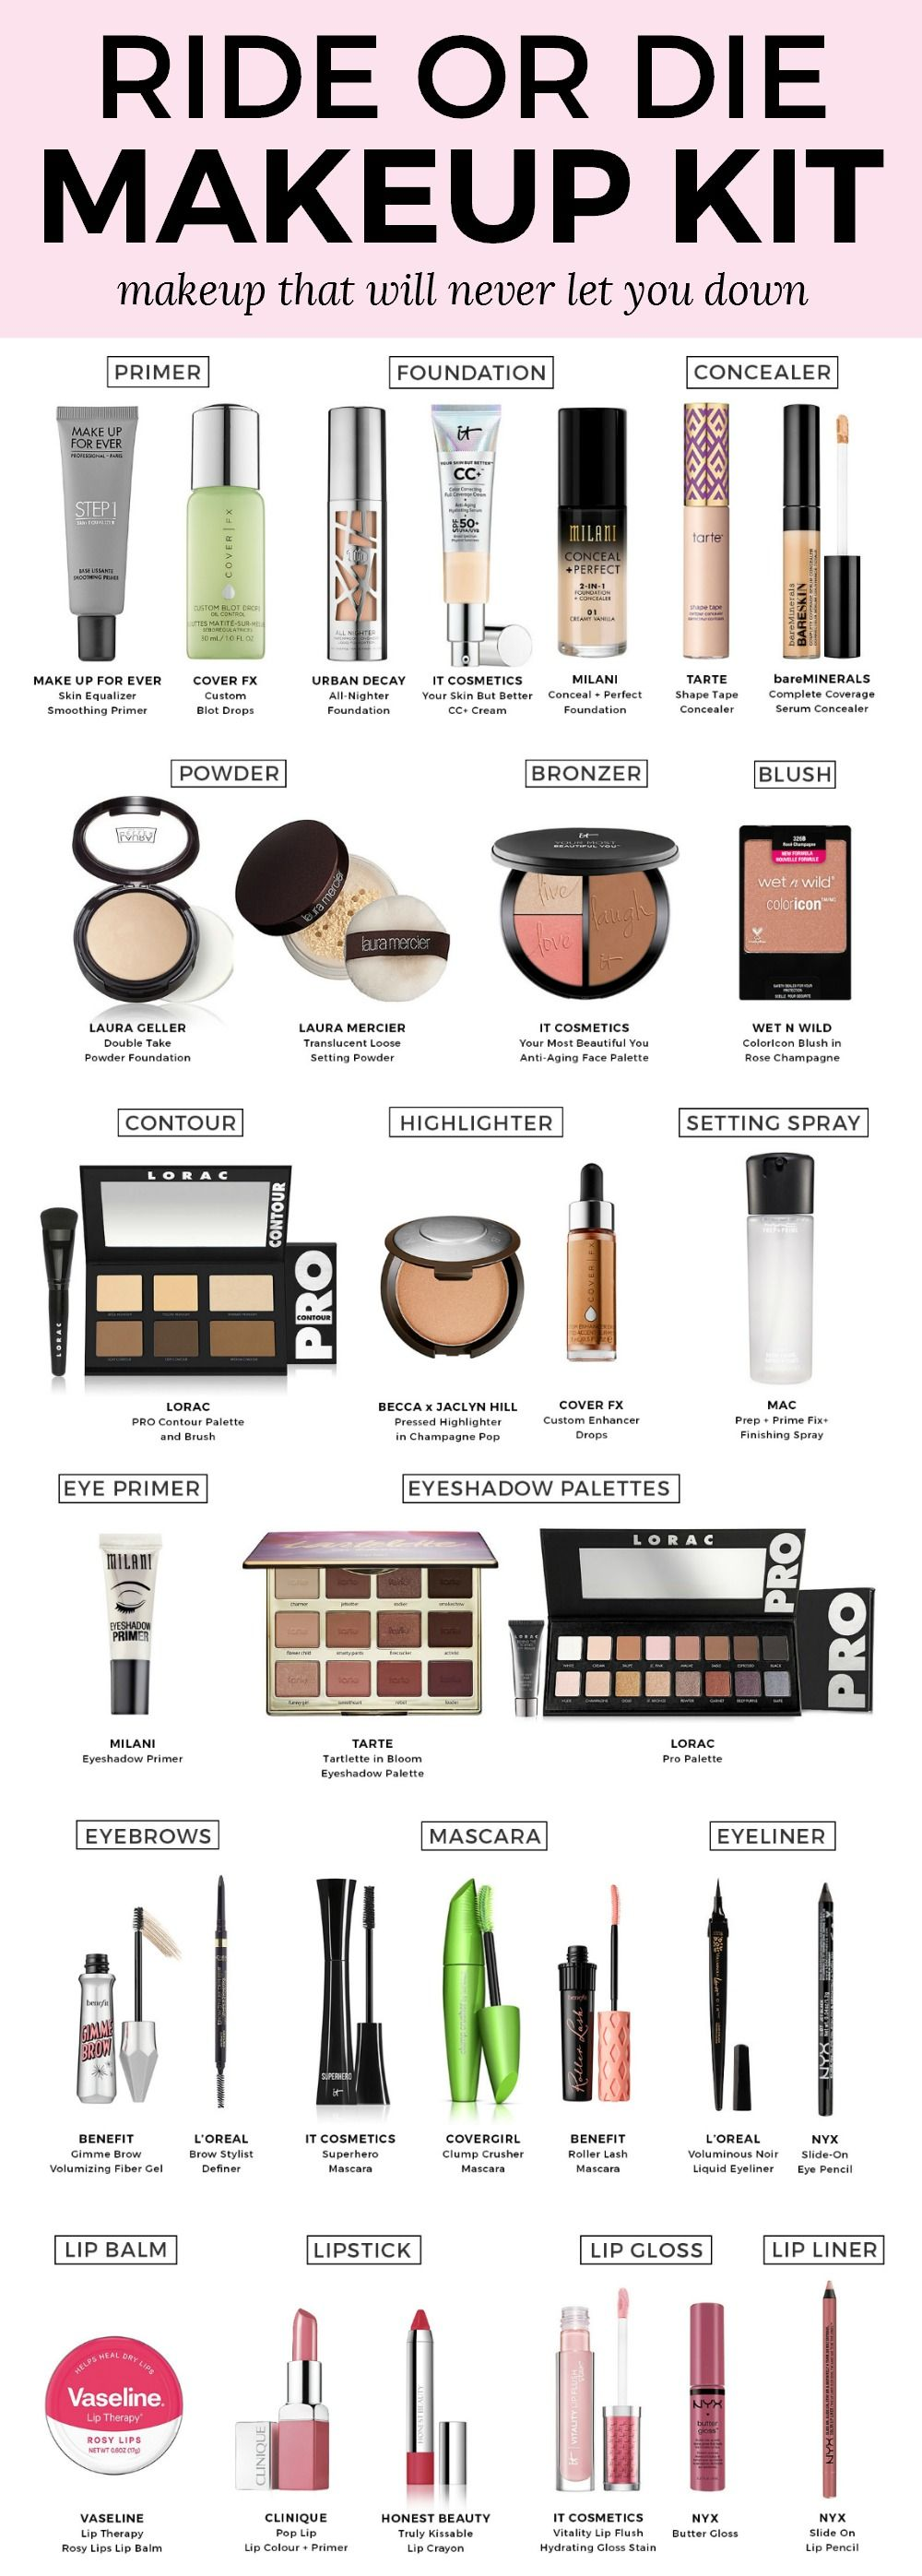 Ride or die makeup tag ashley brooke makeup kit and makeup